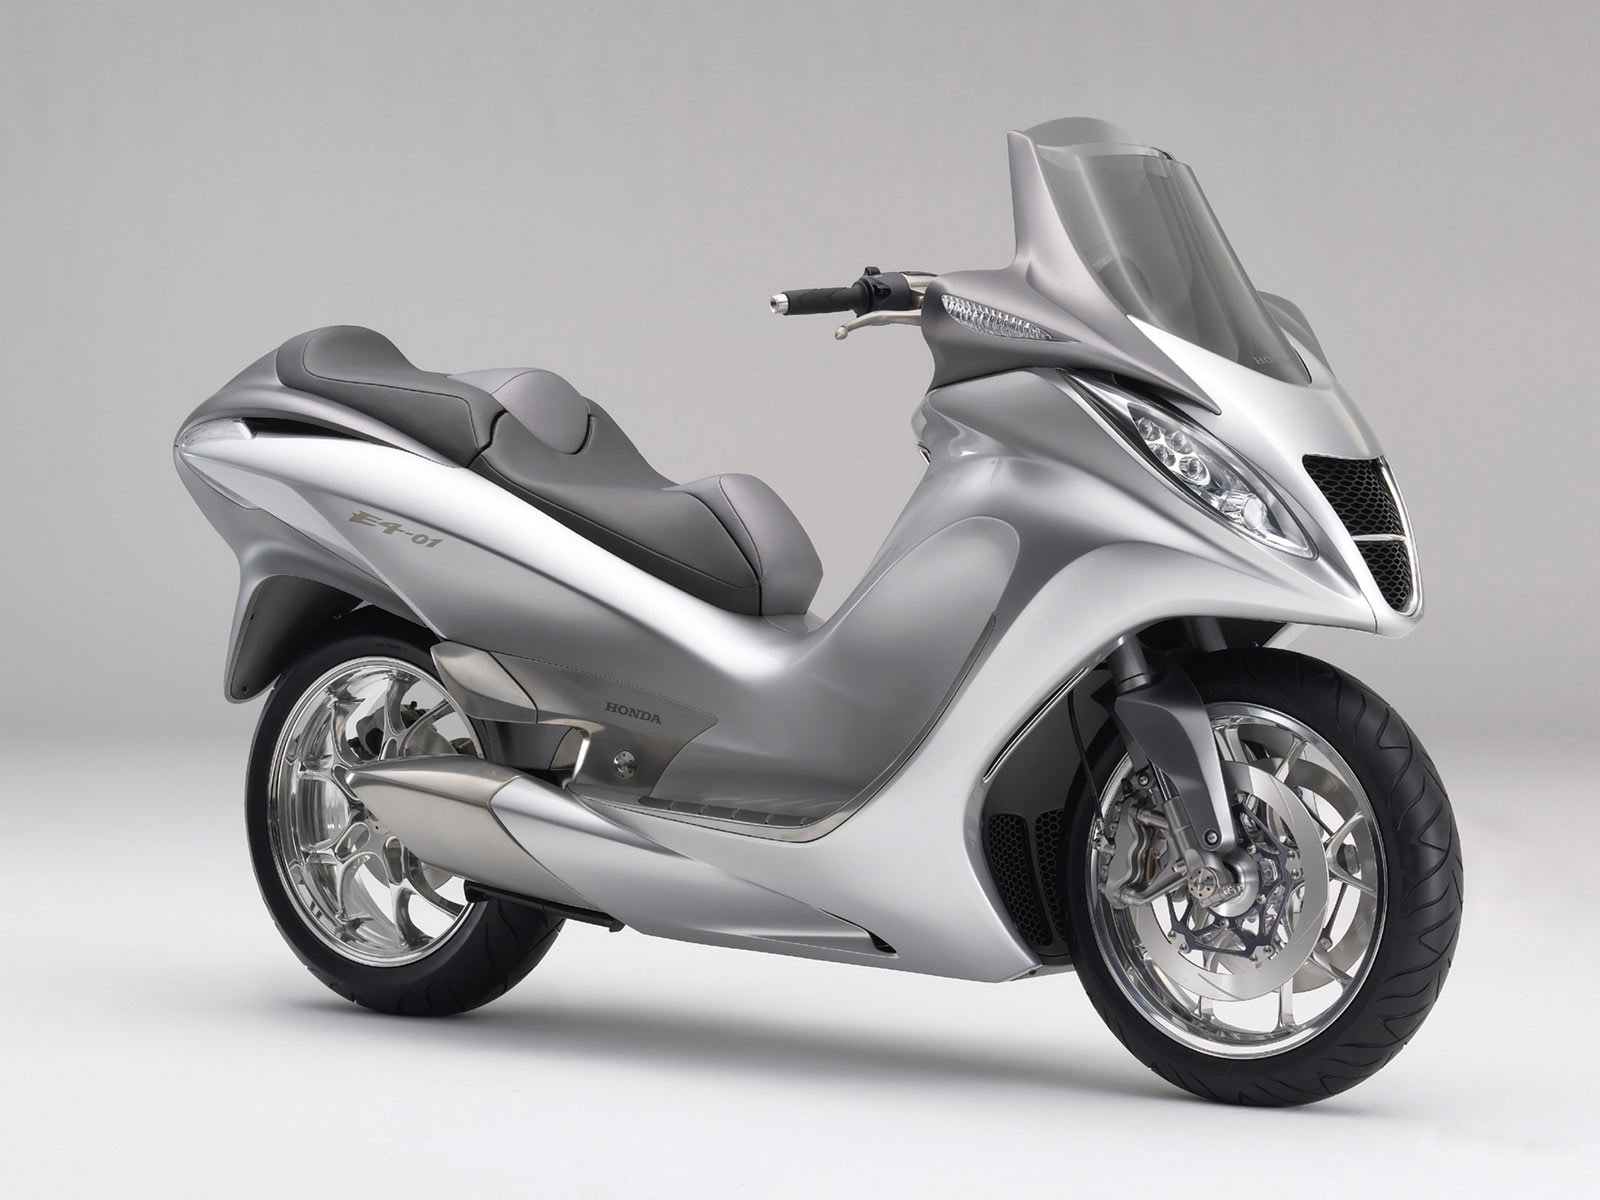 2005 Honda E4-01 Concept Motorcycle Desktop Wallpaper